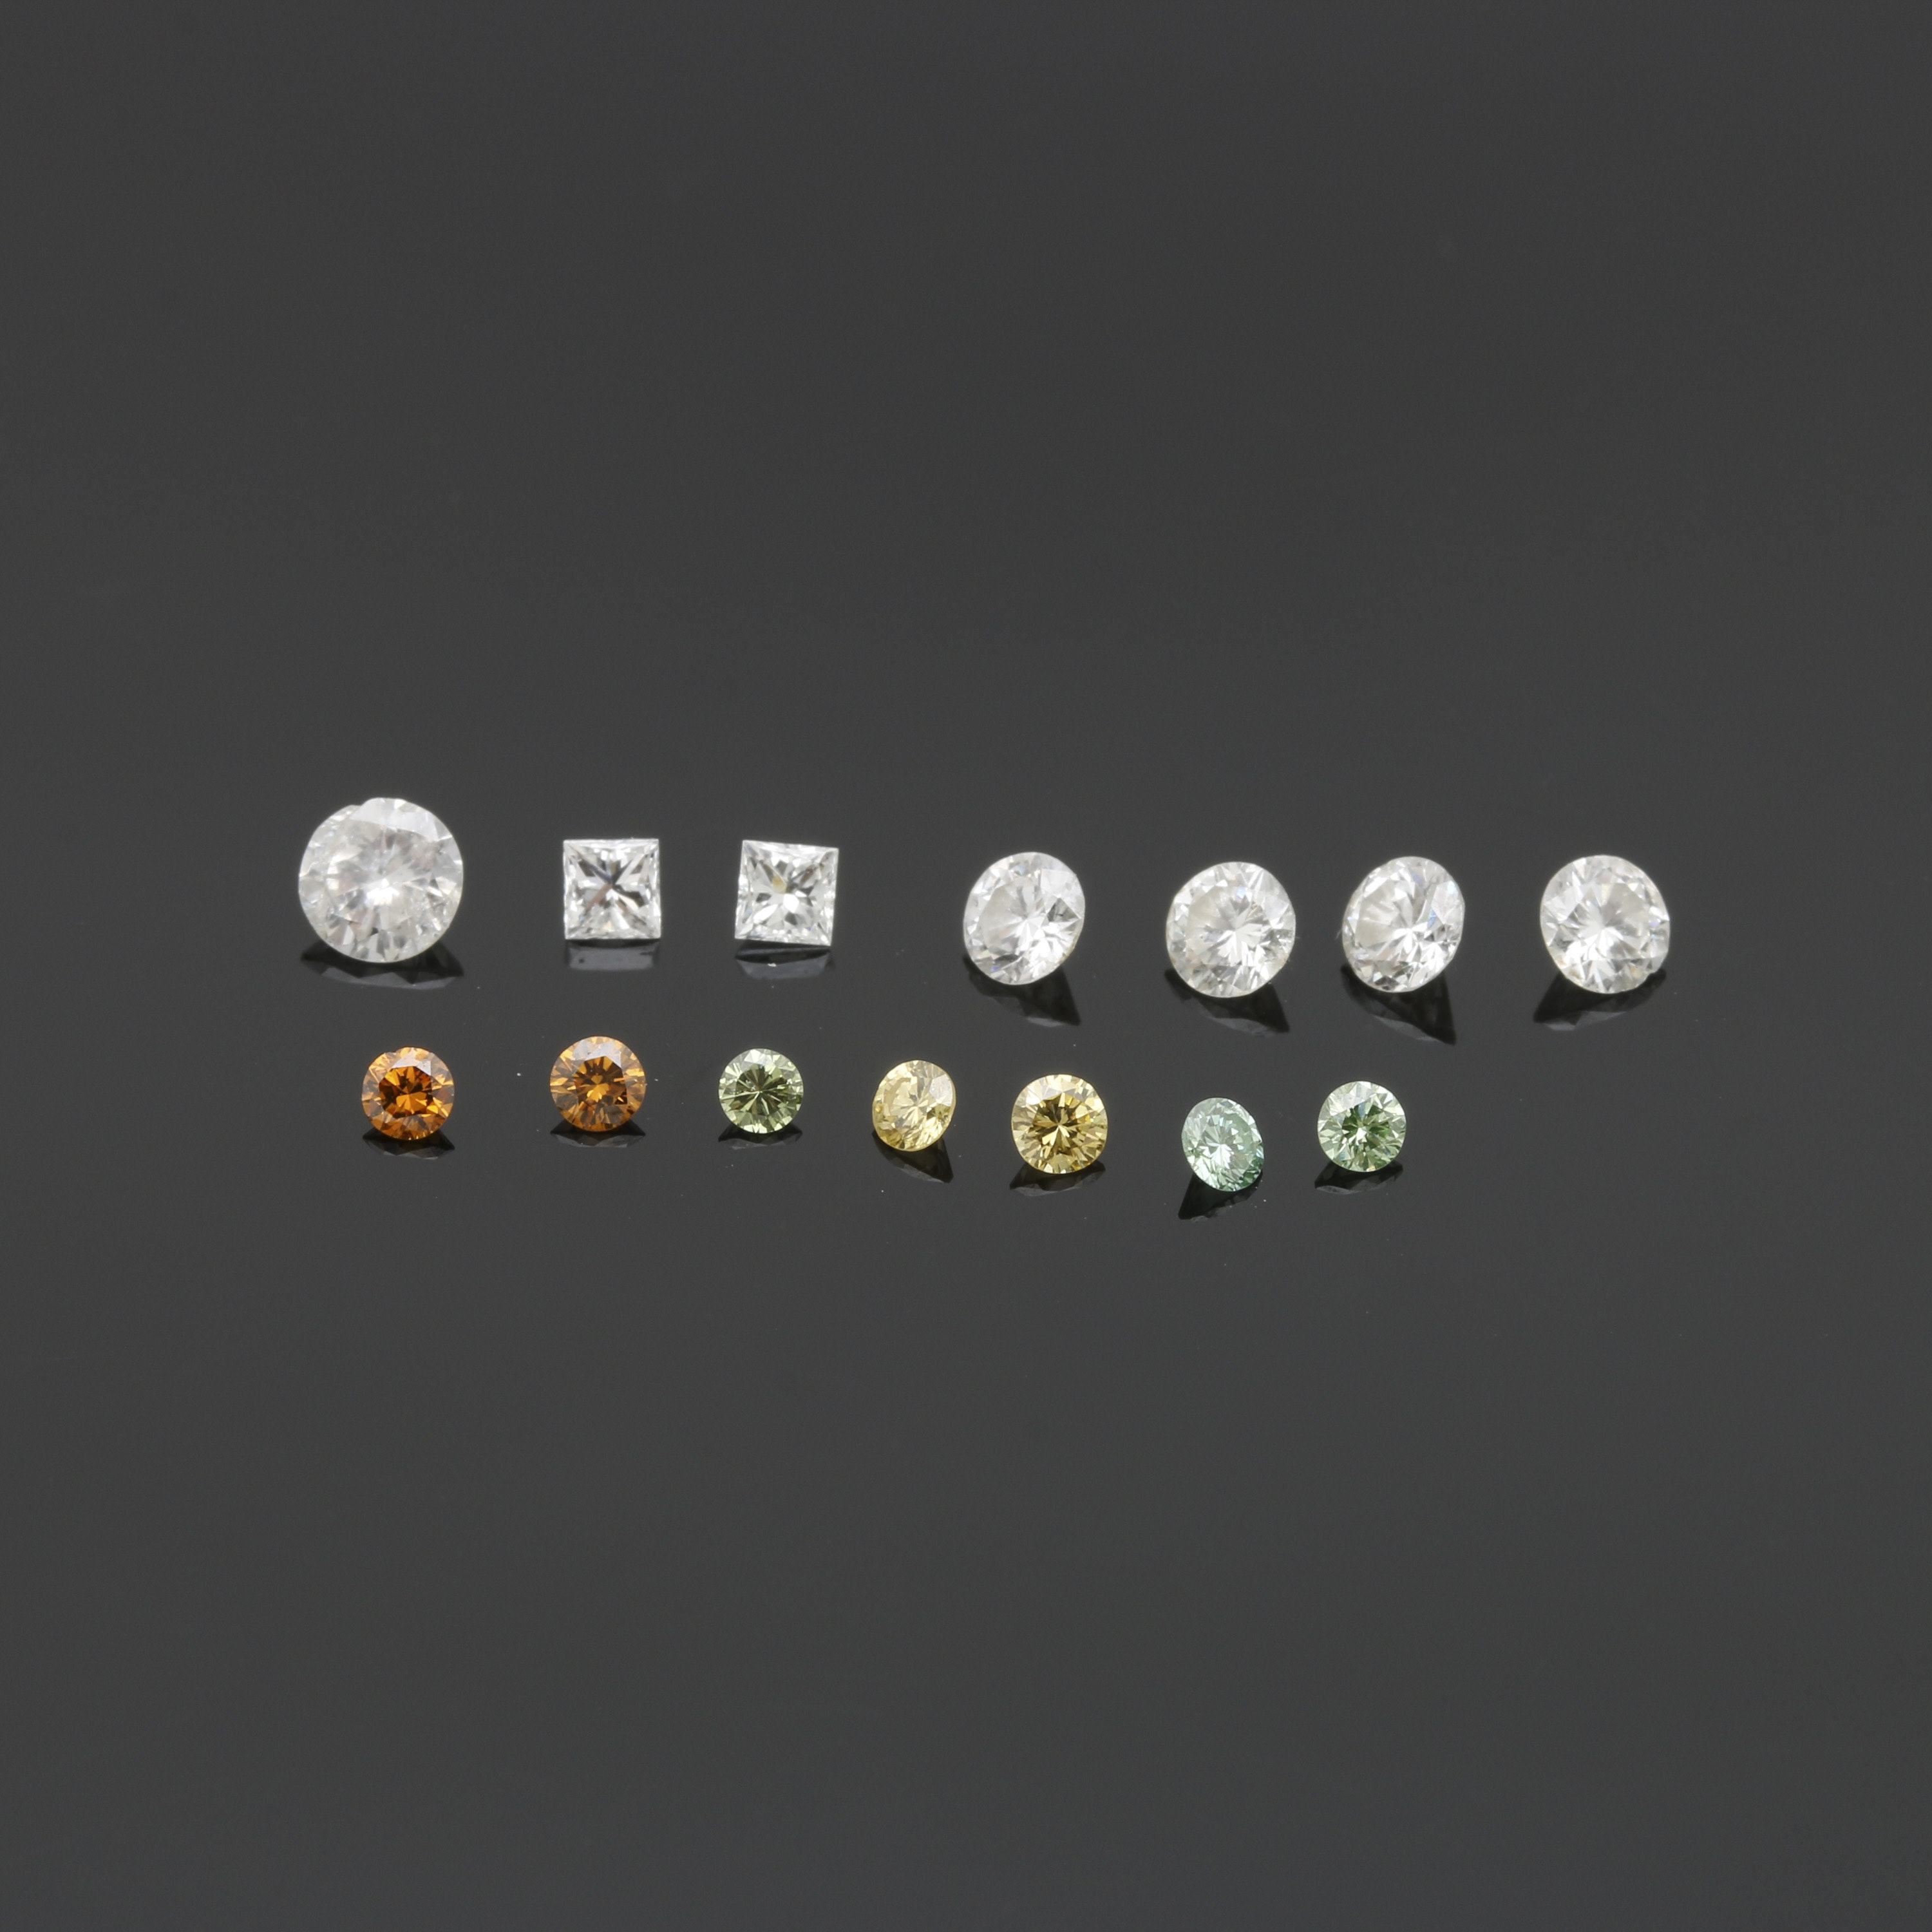 Assortment of 1.19 CTW Loose Diamonds Including Irradiated Colors